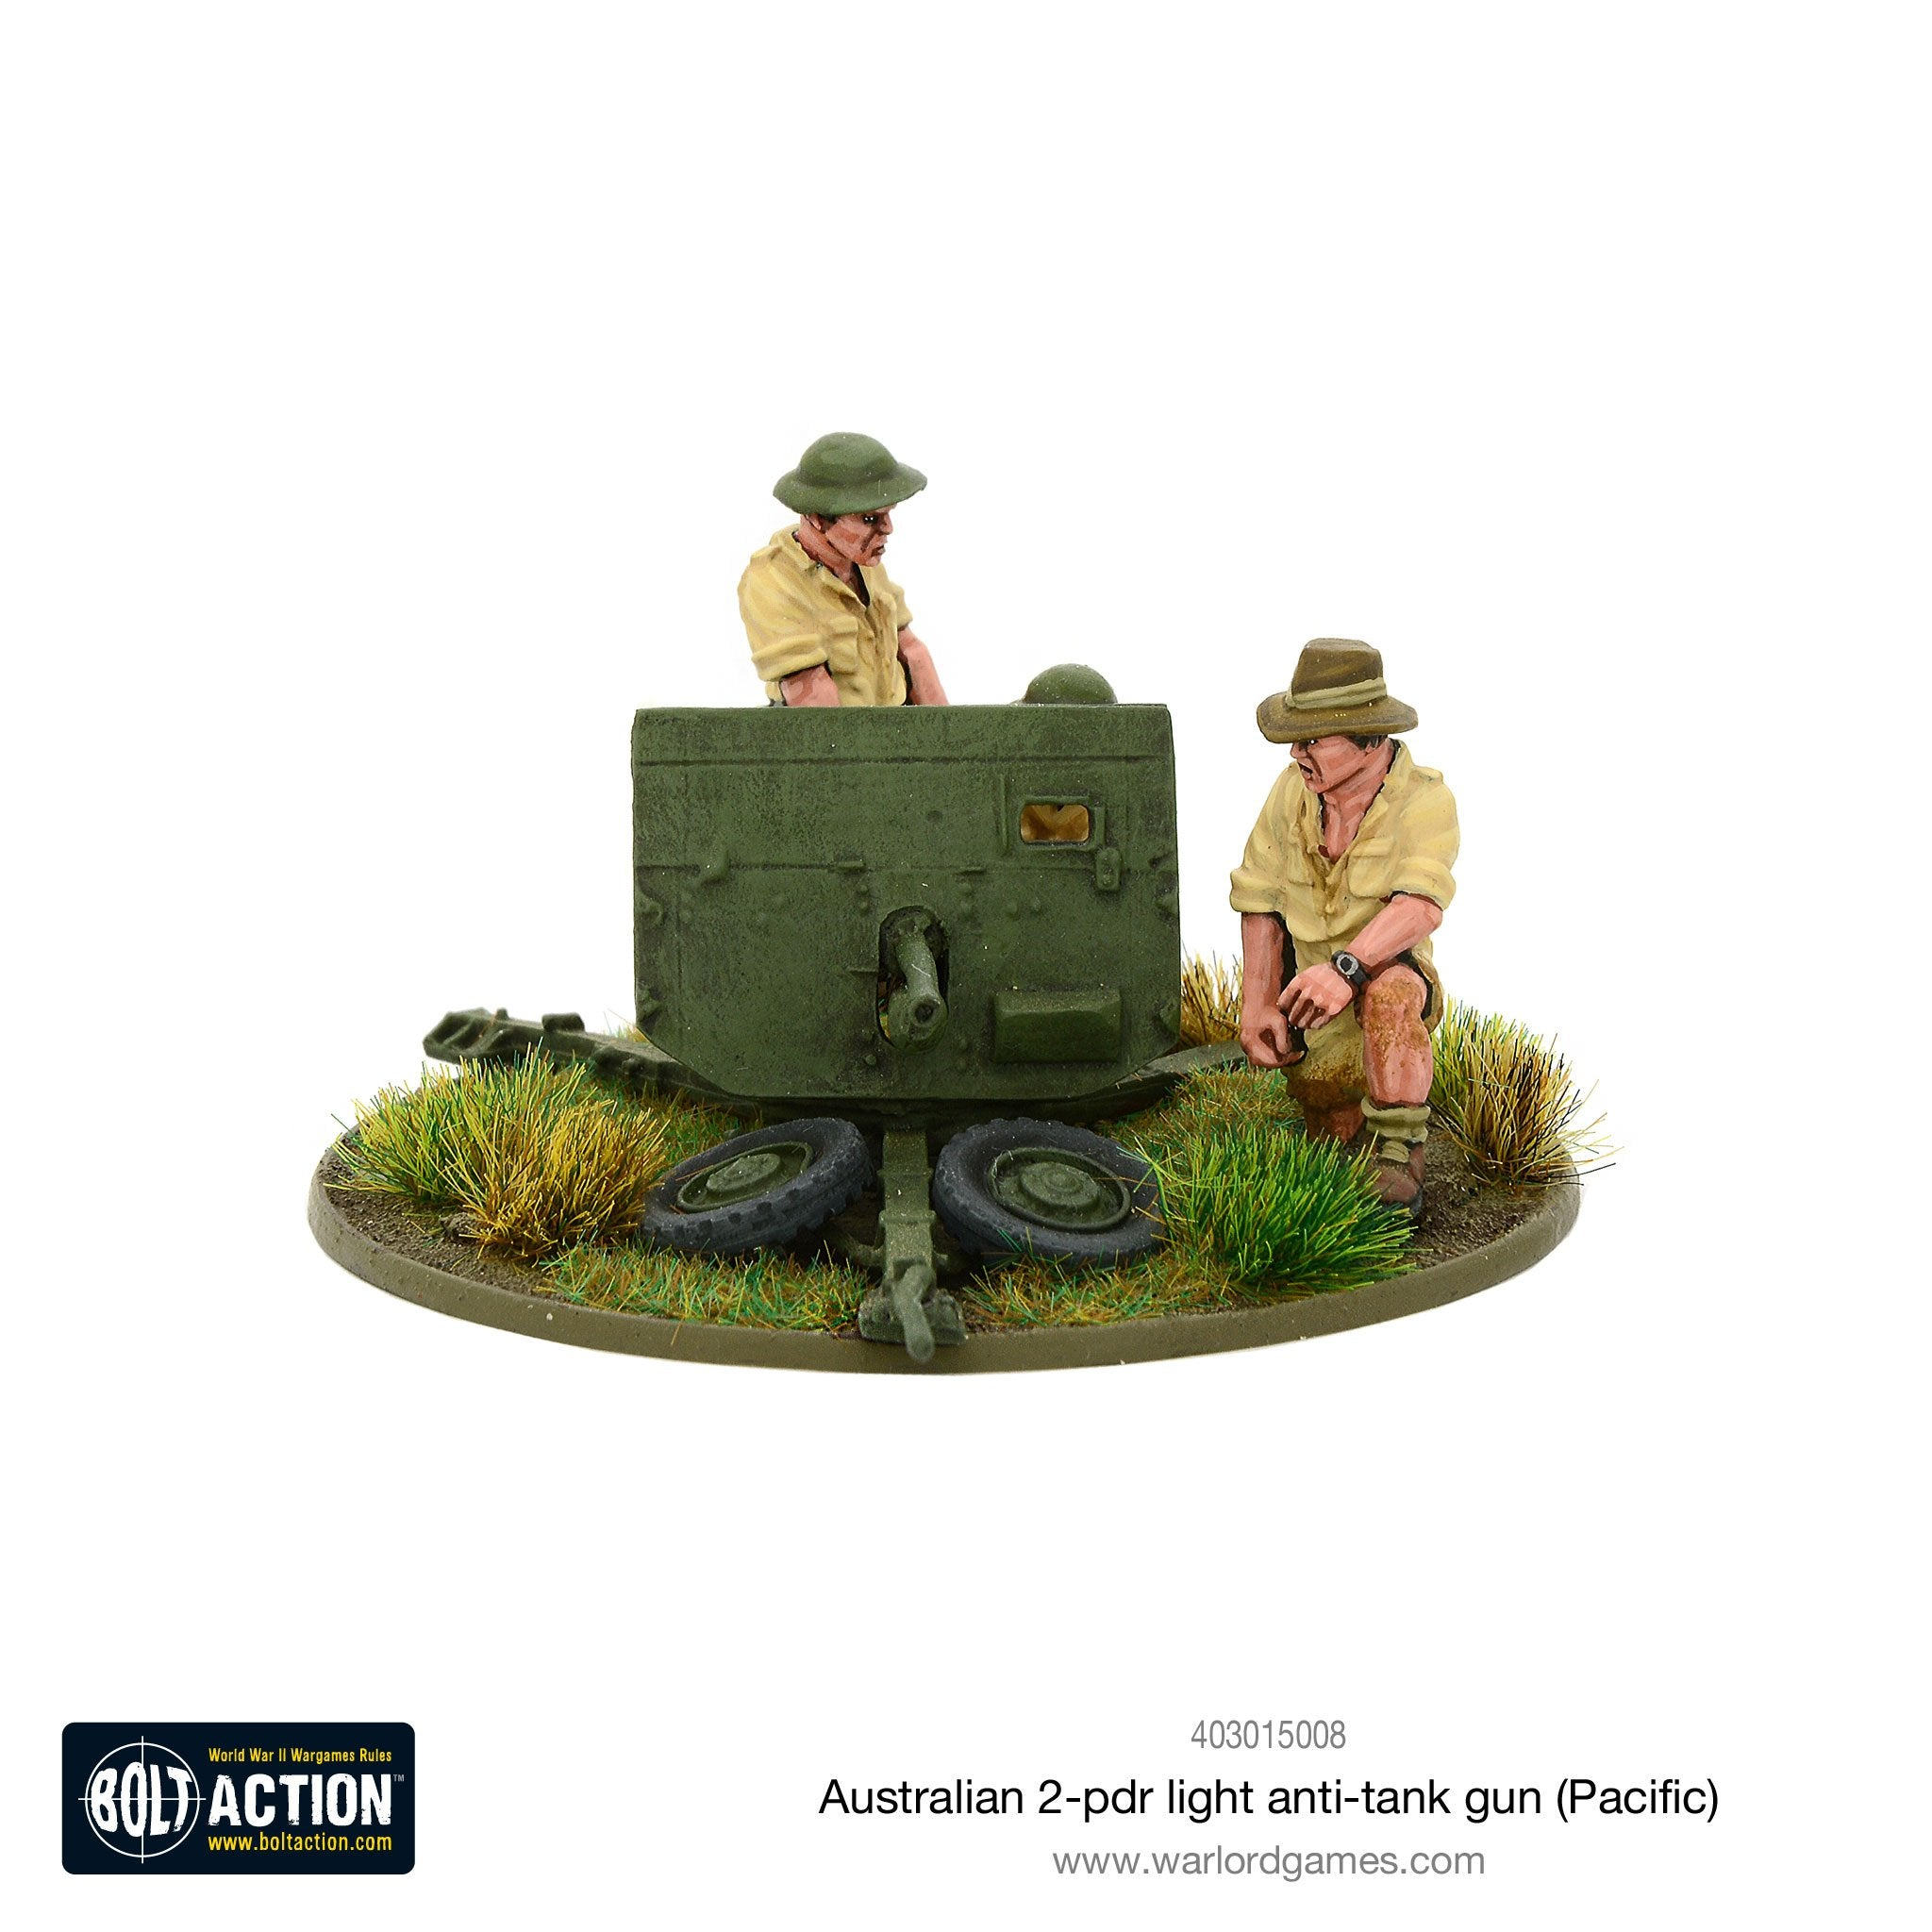 Australian 2-pdr light anti-tank gun (Pacific)